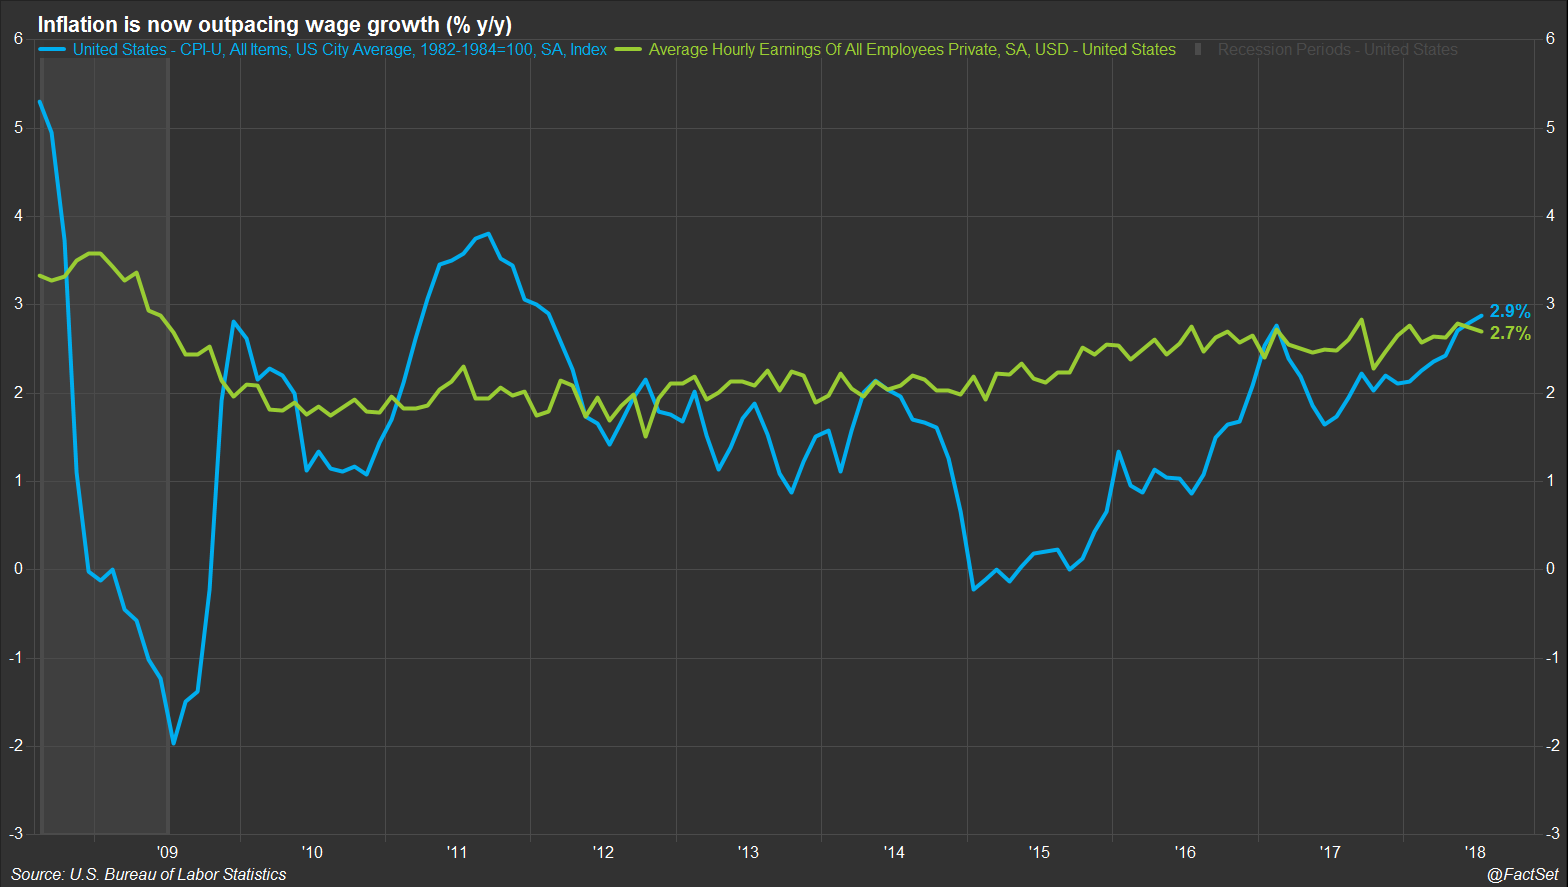 Inflation is now outpacing wage growth